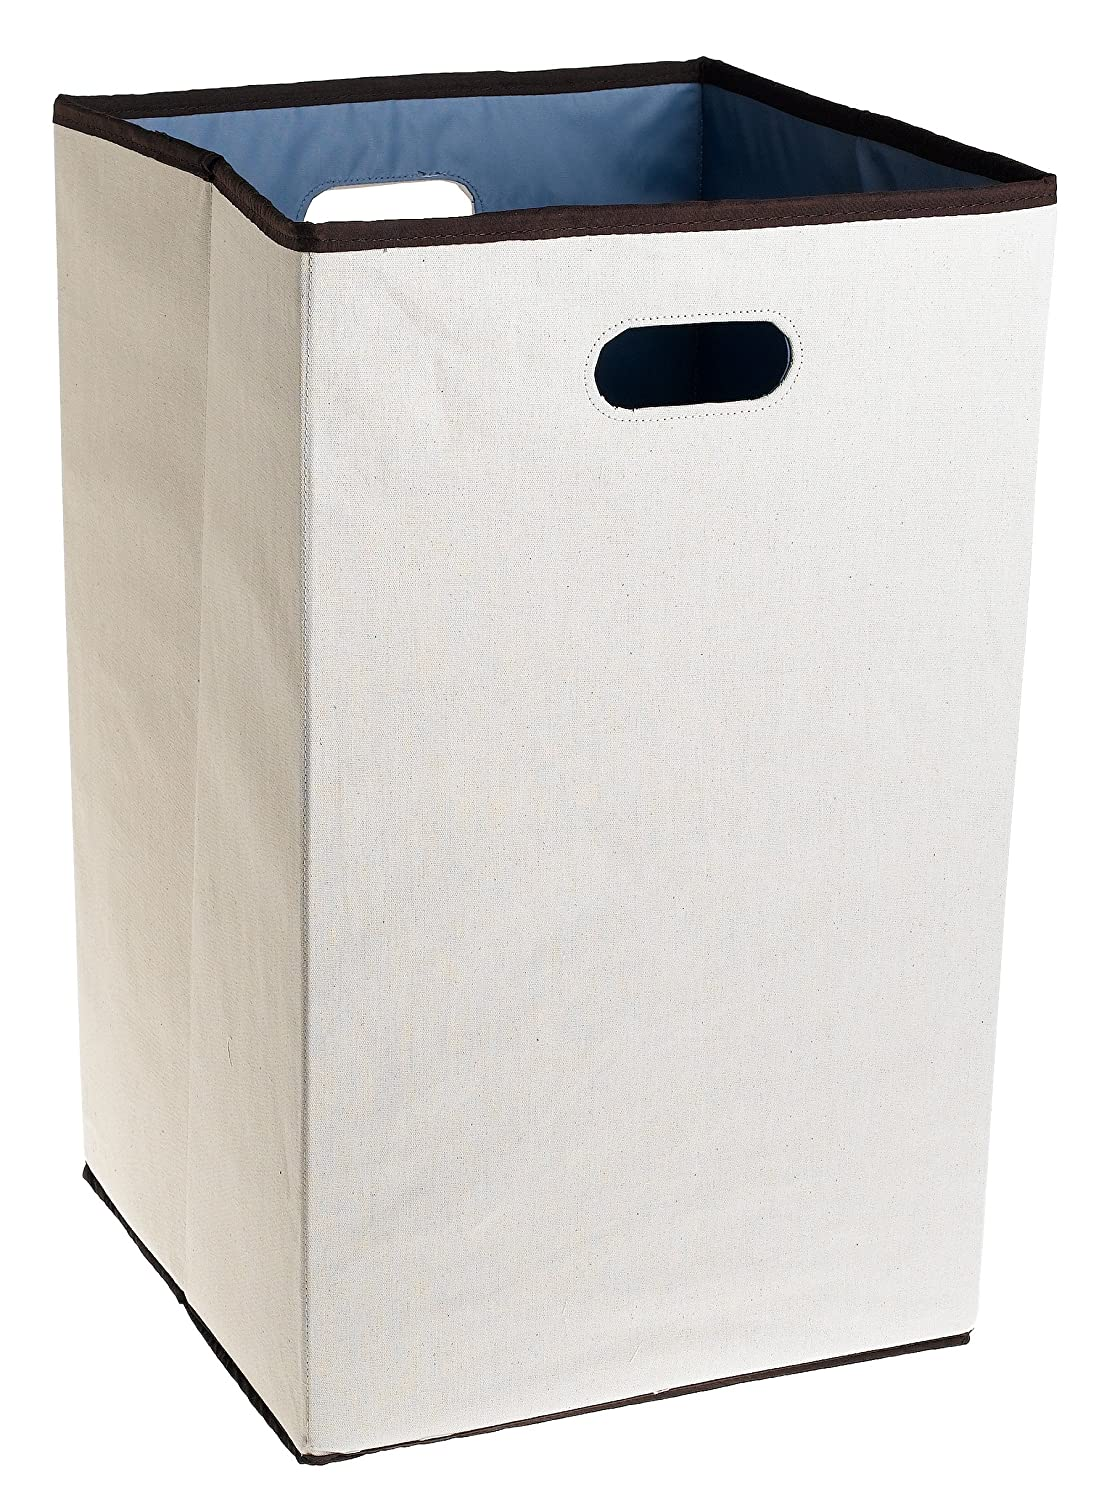 Keep laundry under control with Laundry Hampers. Hampers are convenient for collecting and sorting clothing, linen, towels, pool towels, and much more. Choose from a variety of styles including folding, collapsible, freestanding, and rolling.